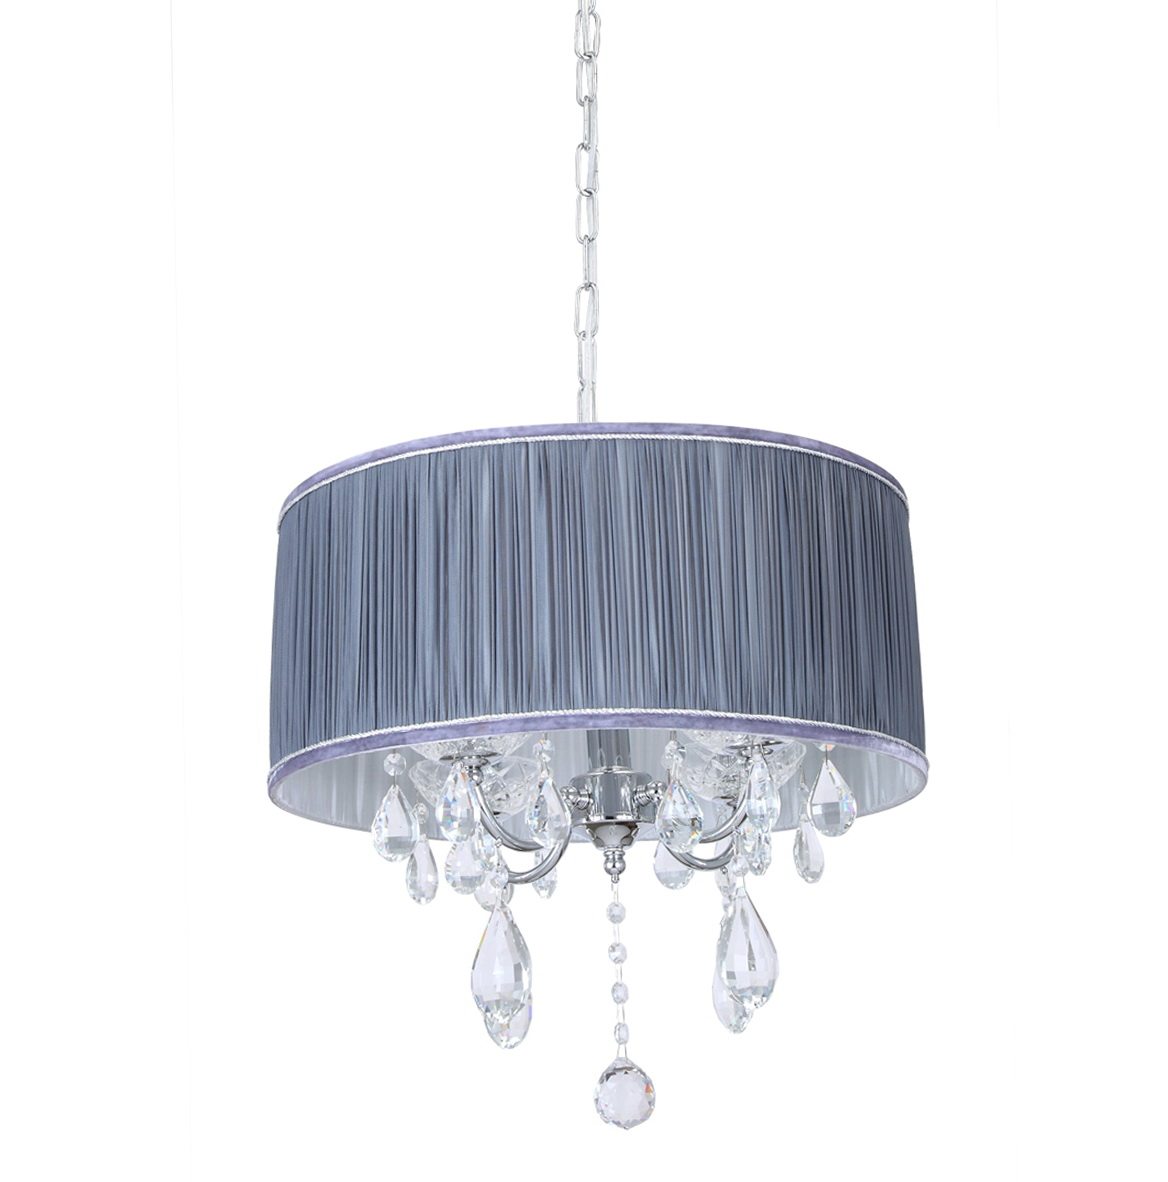 Chandeliers With Shades Uk